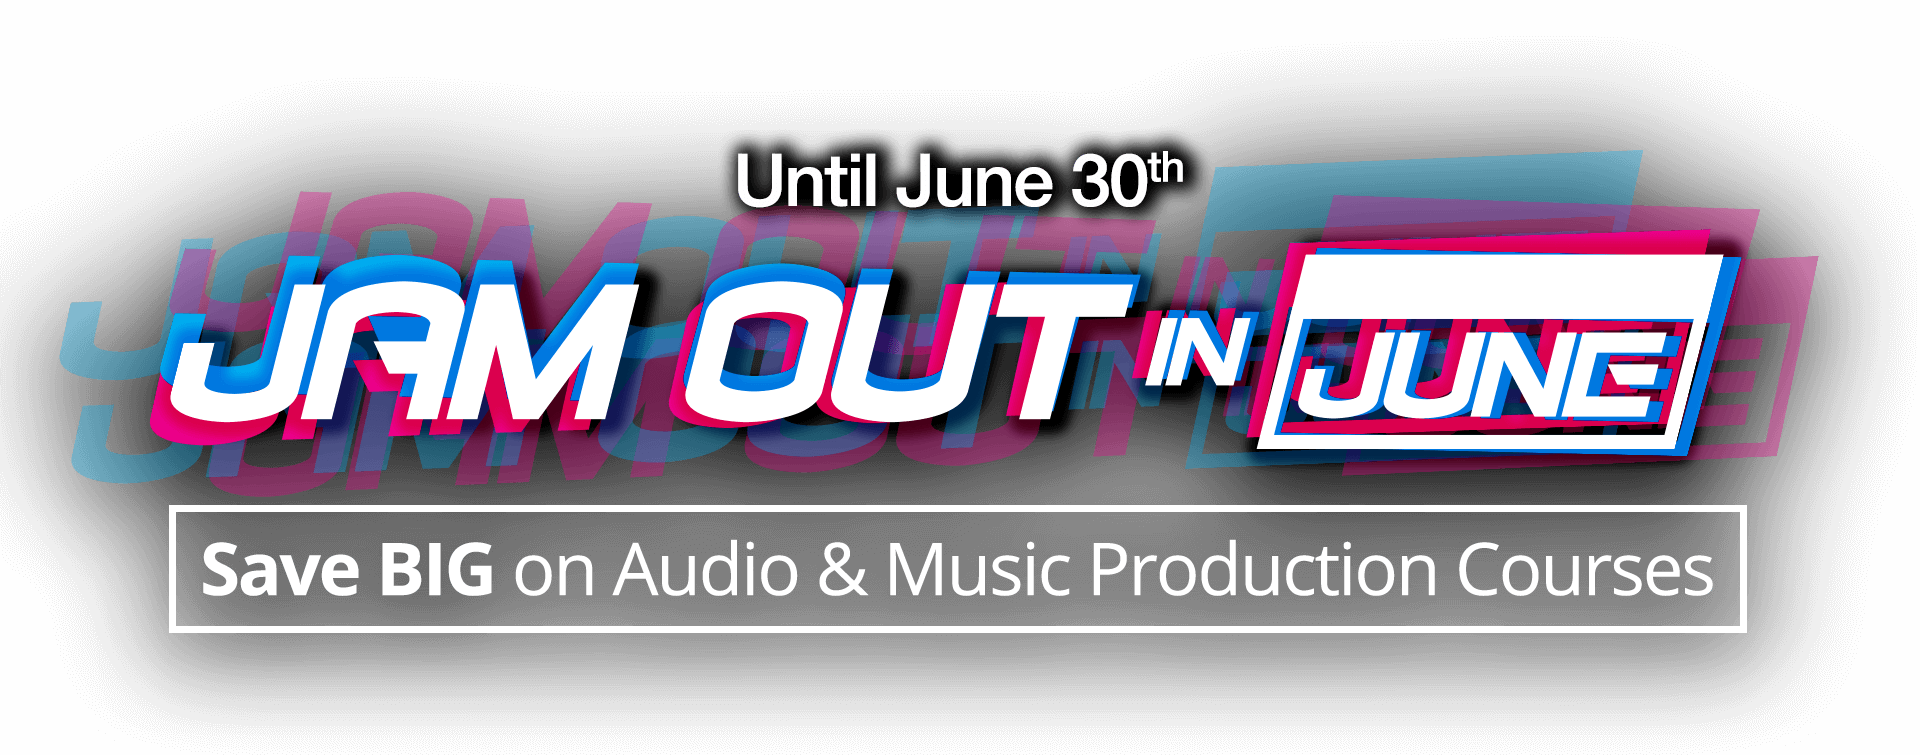 Jam out in June Sale